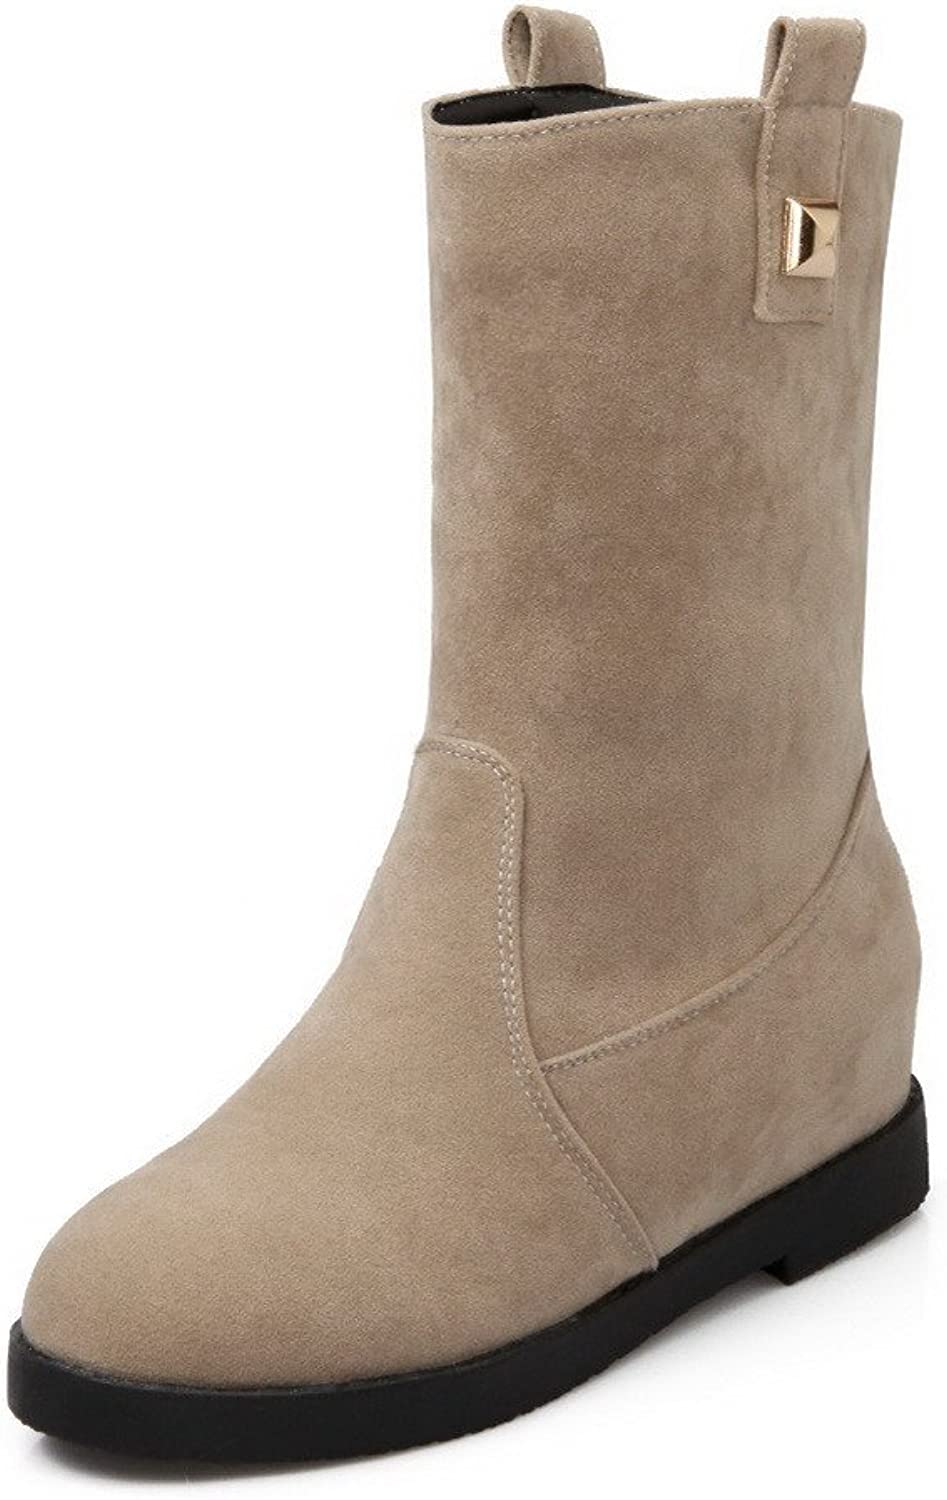 AllhqFashion Women's Pull On Round Closed Toe Kitten Heels Imitated Suede Mid Top Boots